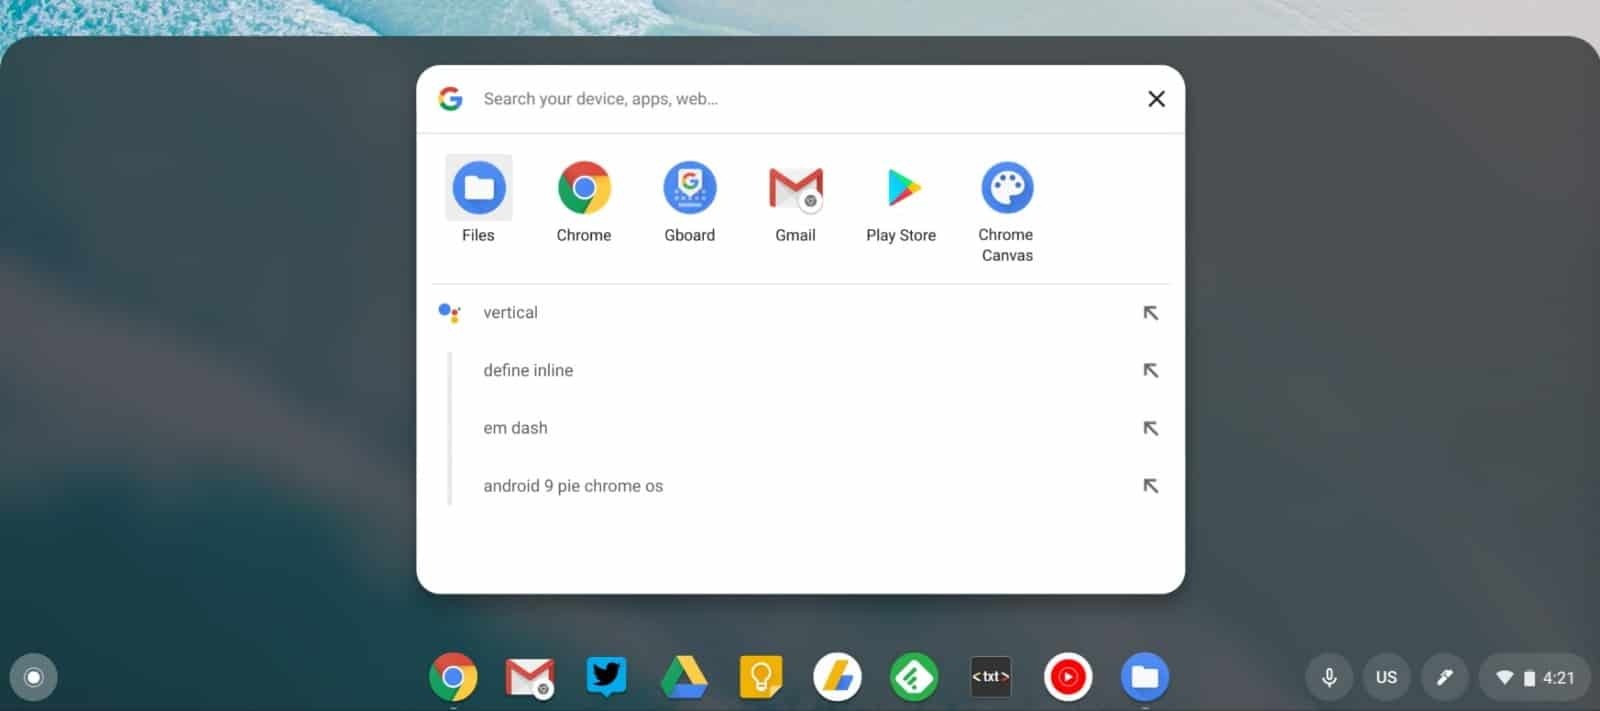 01 chrome os 74 search 5 from 9to5Google